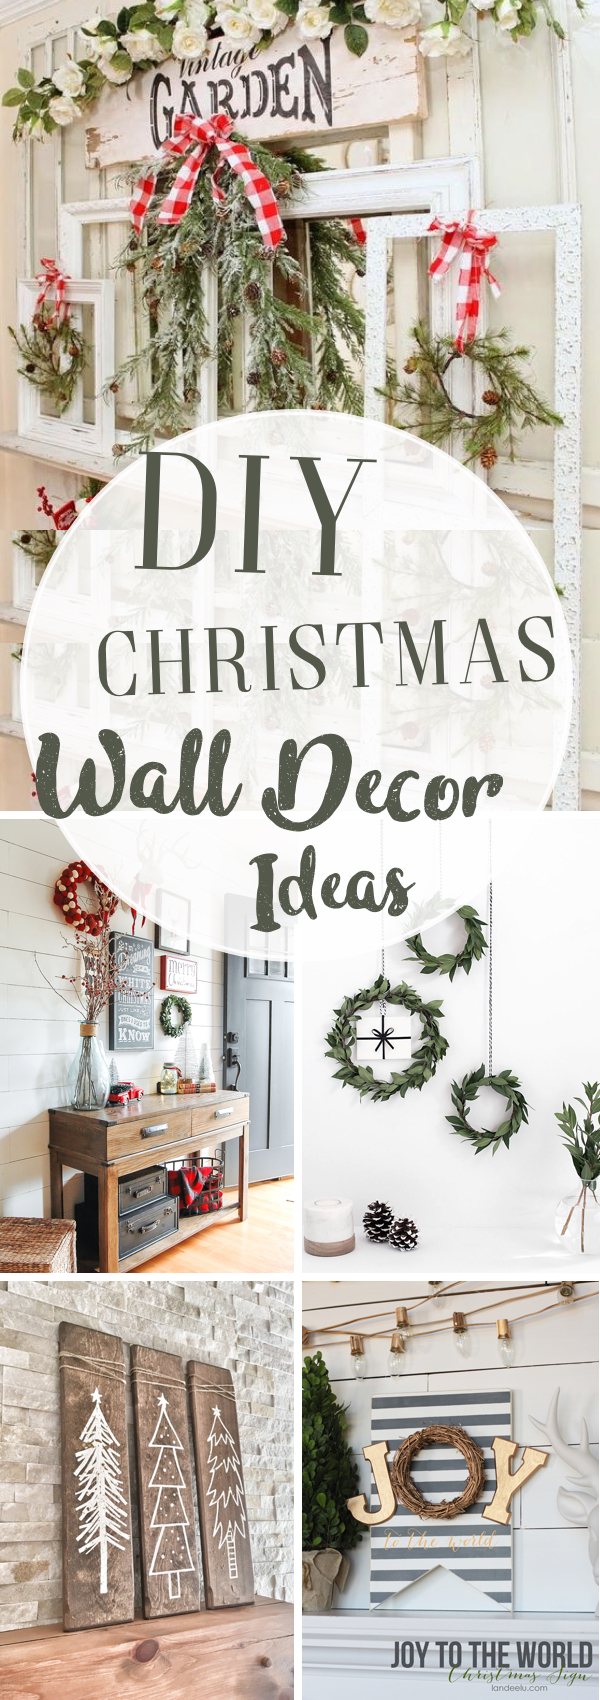 Best 30 diy christmas wall decor ideas diy christmas wall decor ideas adding holiday cheers to your homes walls solutioingenieria Choice Image